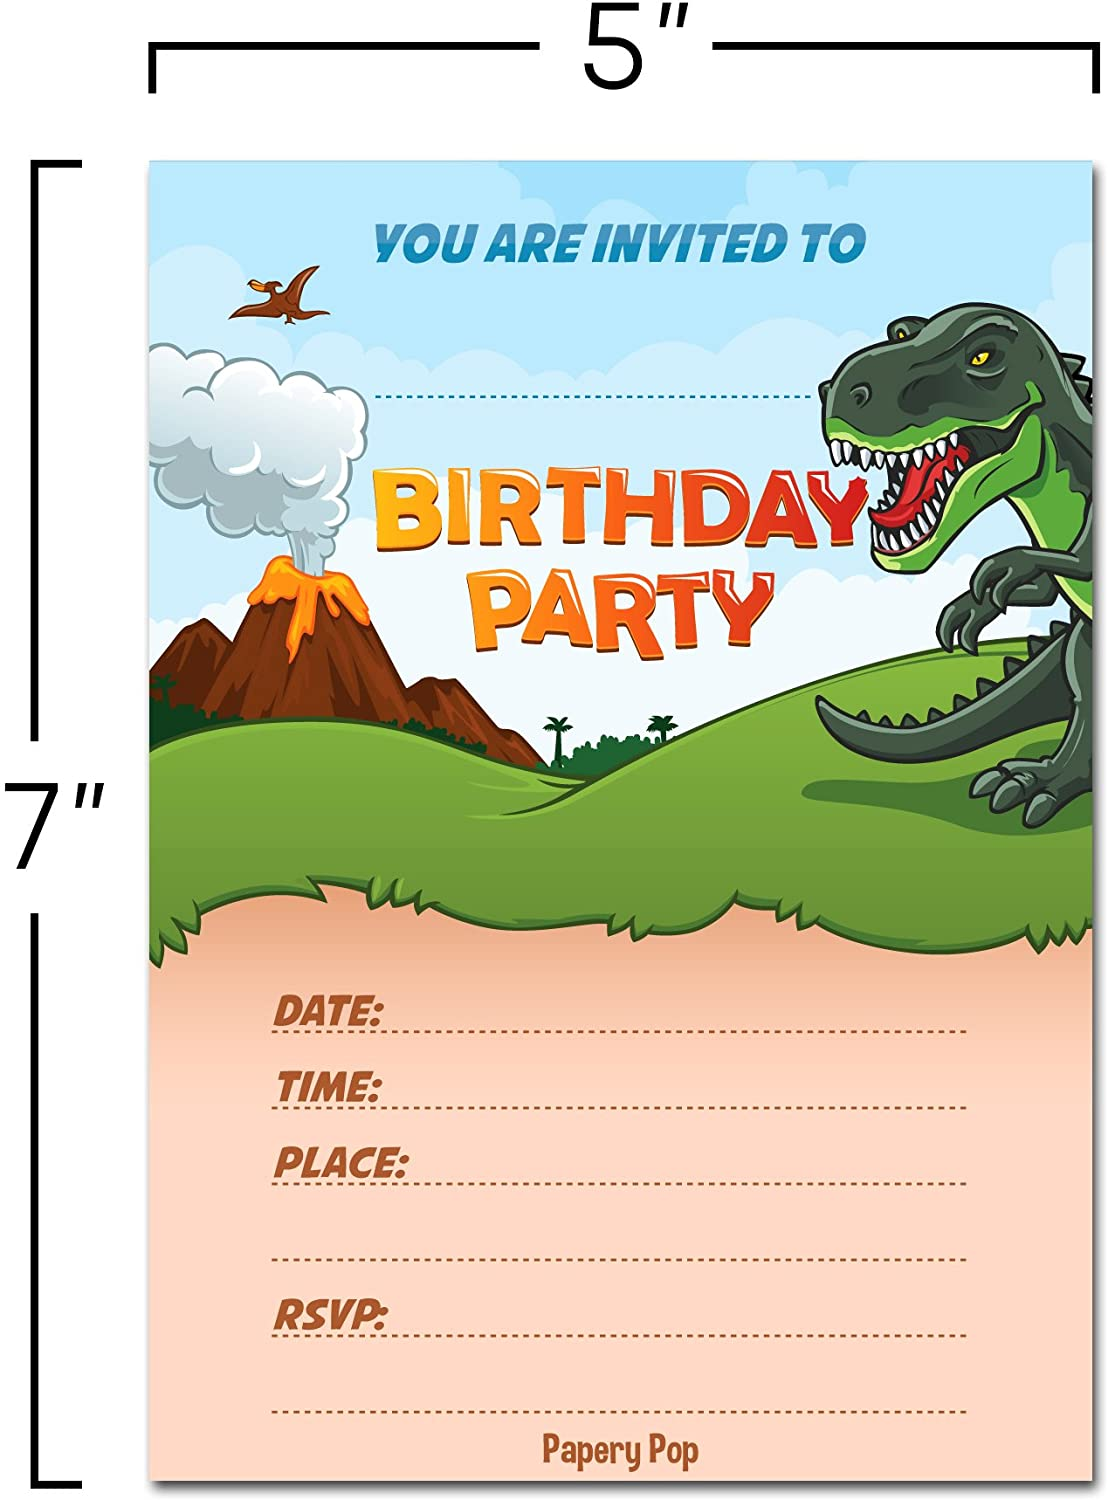 30 dinosaur birthday invitations with envelopes 30 pack kids birthday invitations for boys or girls dinosaur party decorations supplies